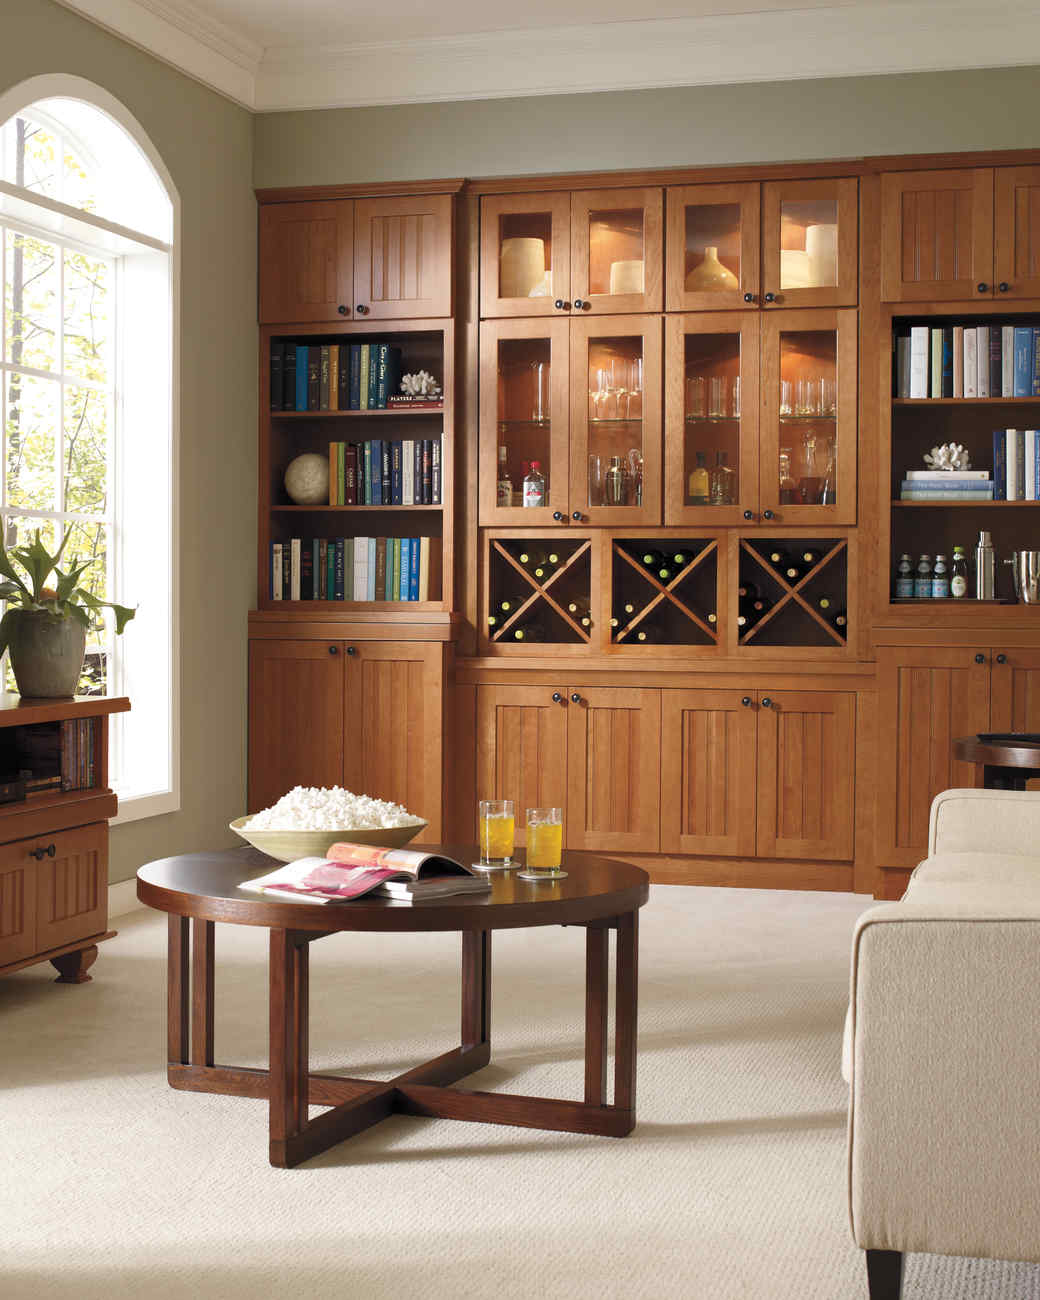 Martha Stewart Living Lily Pond Cabinets